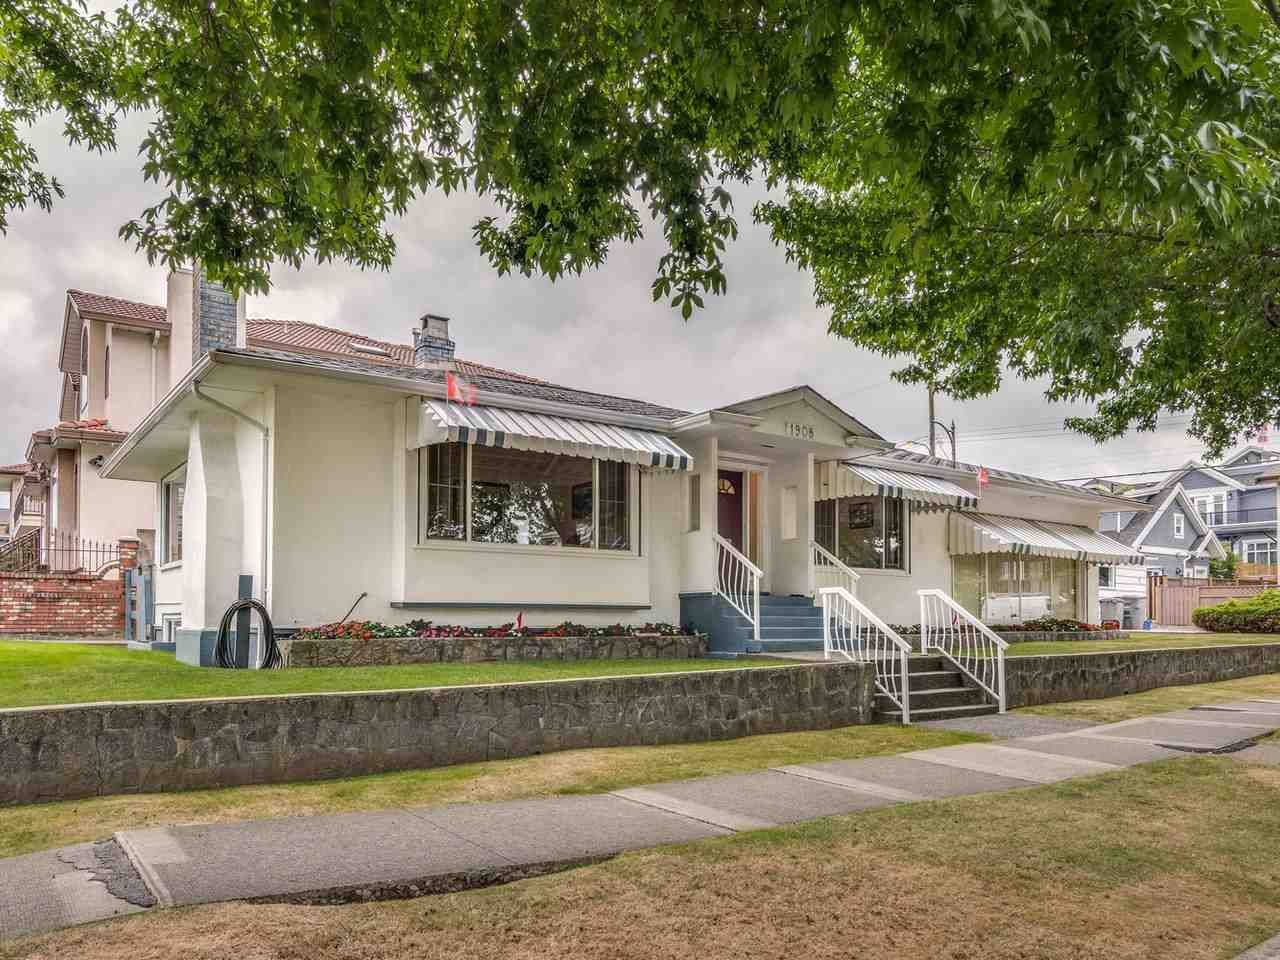 Main Photo: 1908 PENTICTON Street in Vancouver: Renfrew VE House for sale (Vancouver East)  : MLS®# R2493342